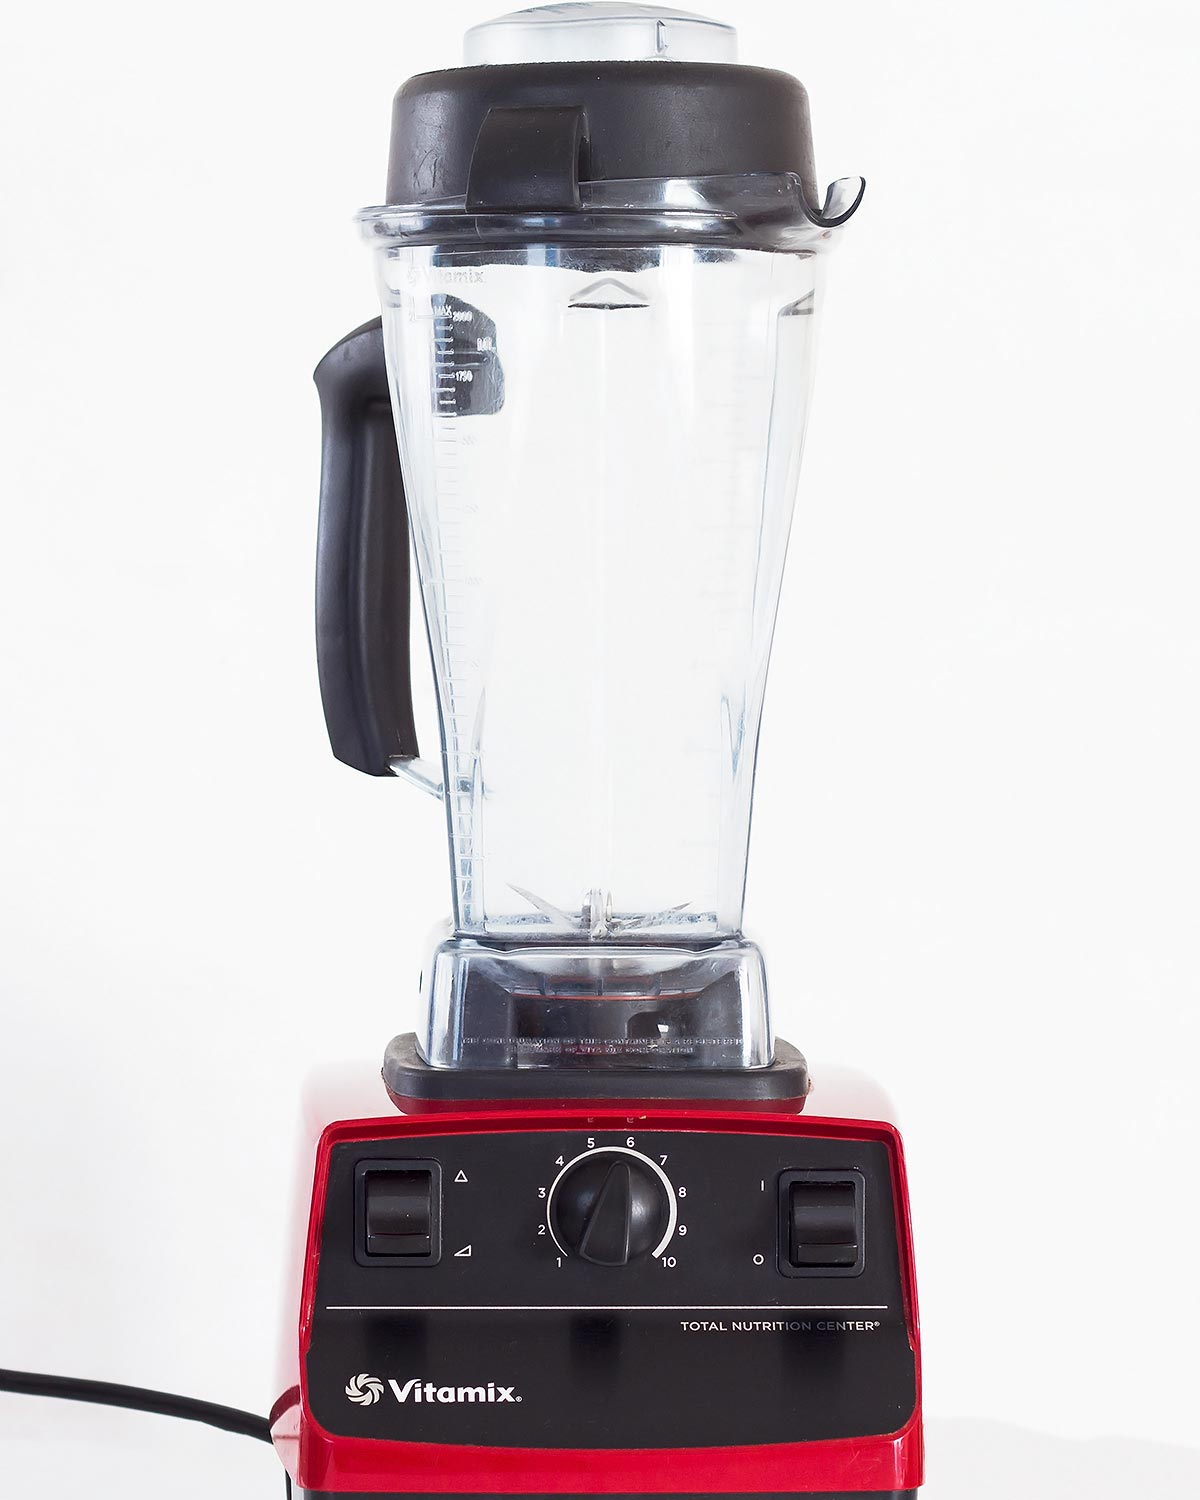 Red Vitamix Blender 5200 with 64 oz jar